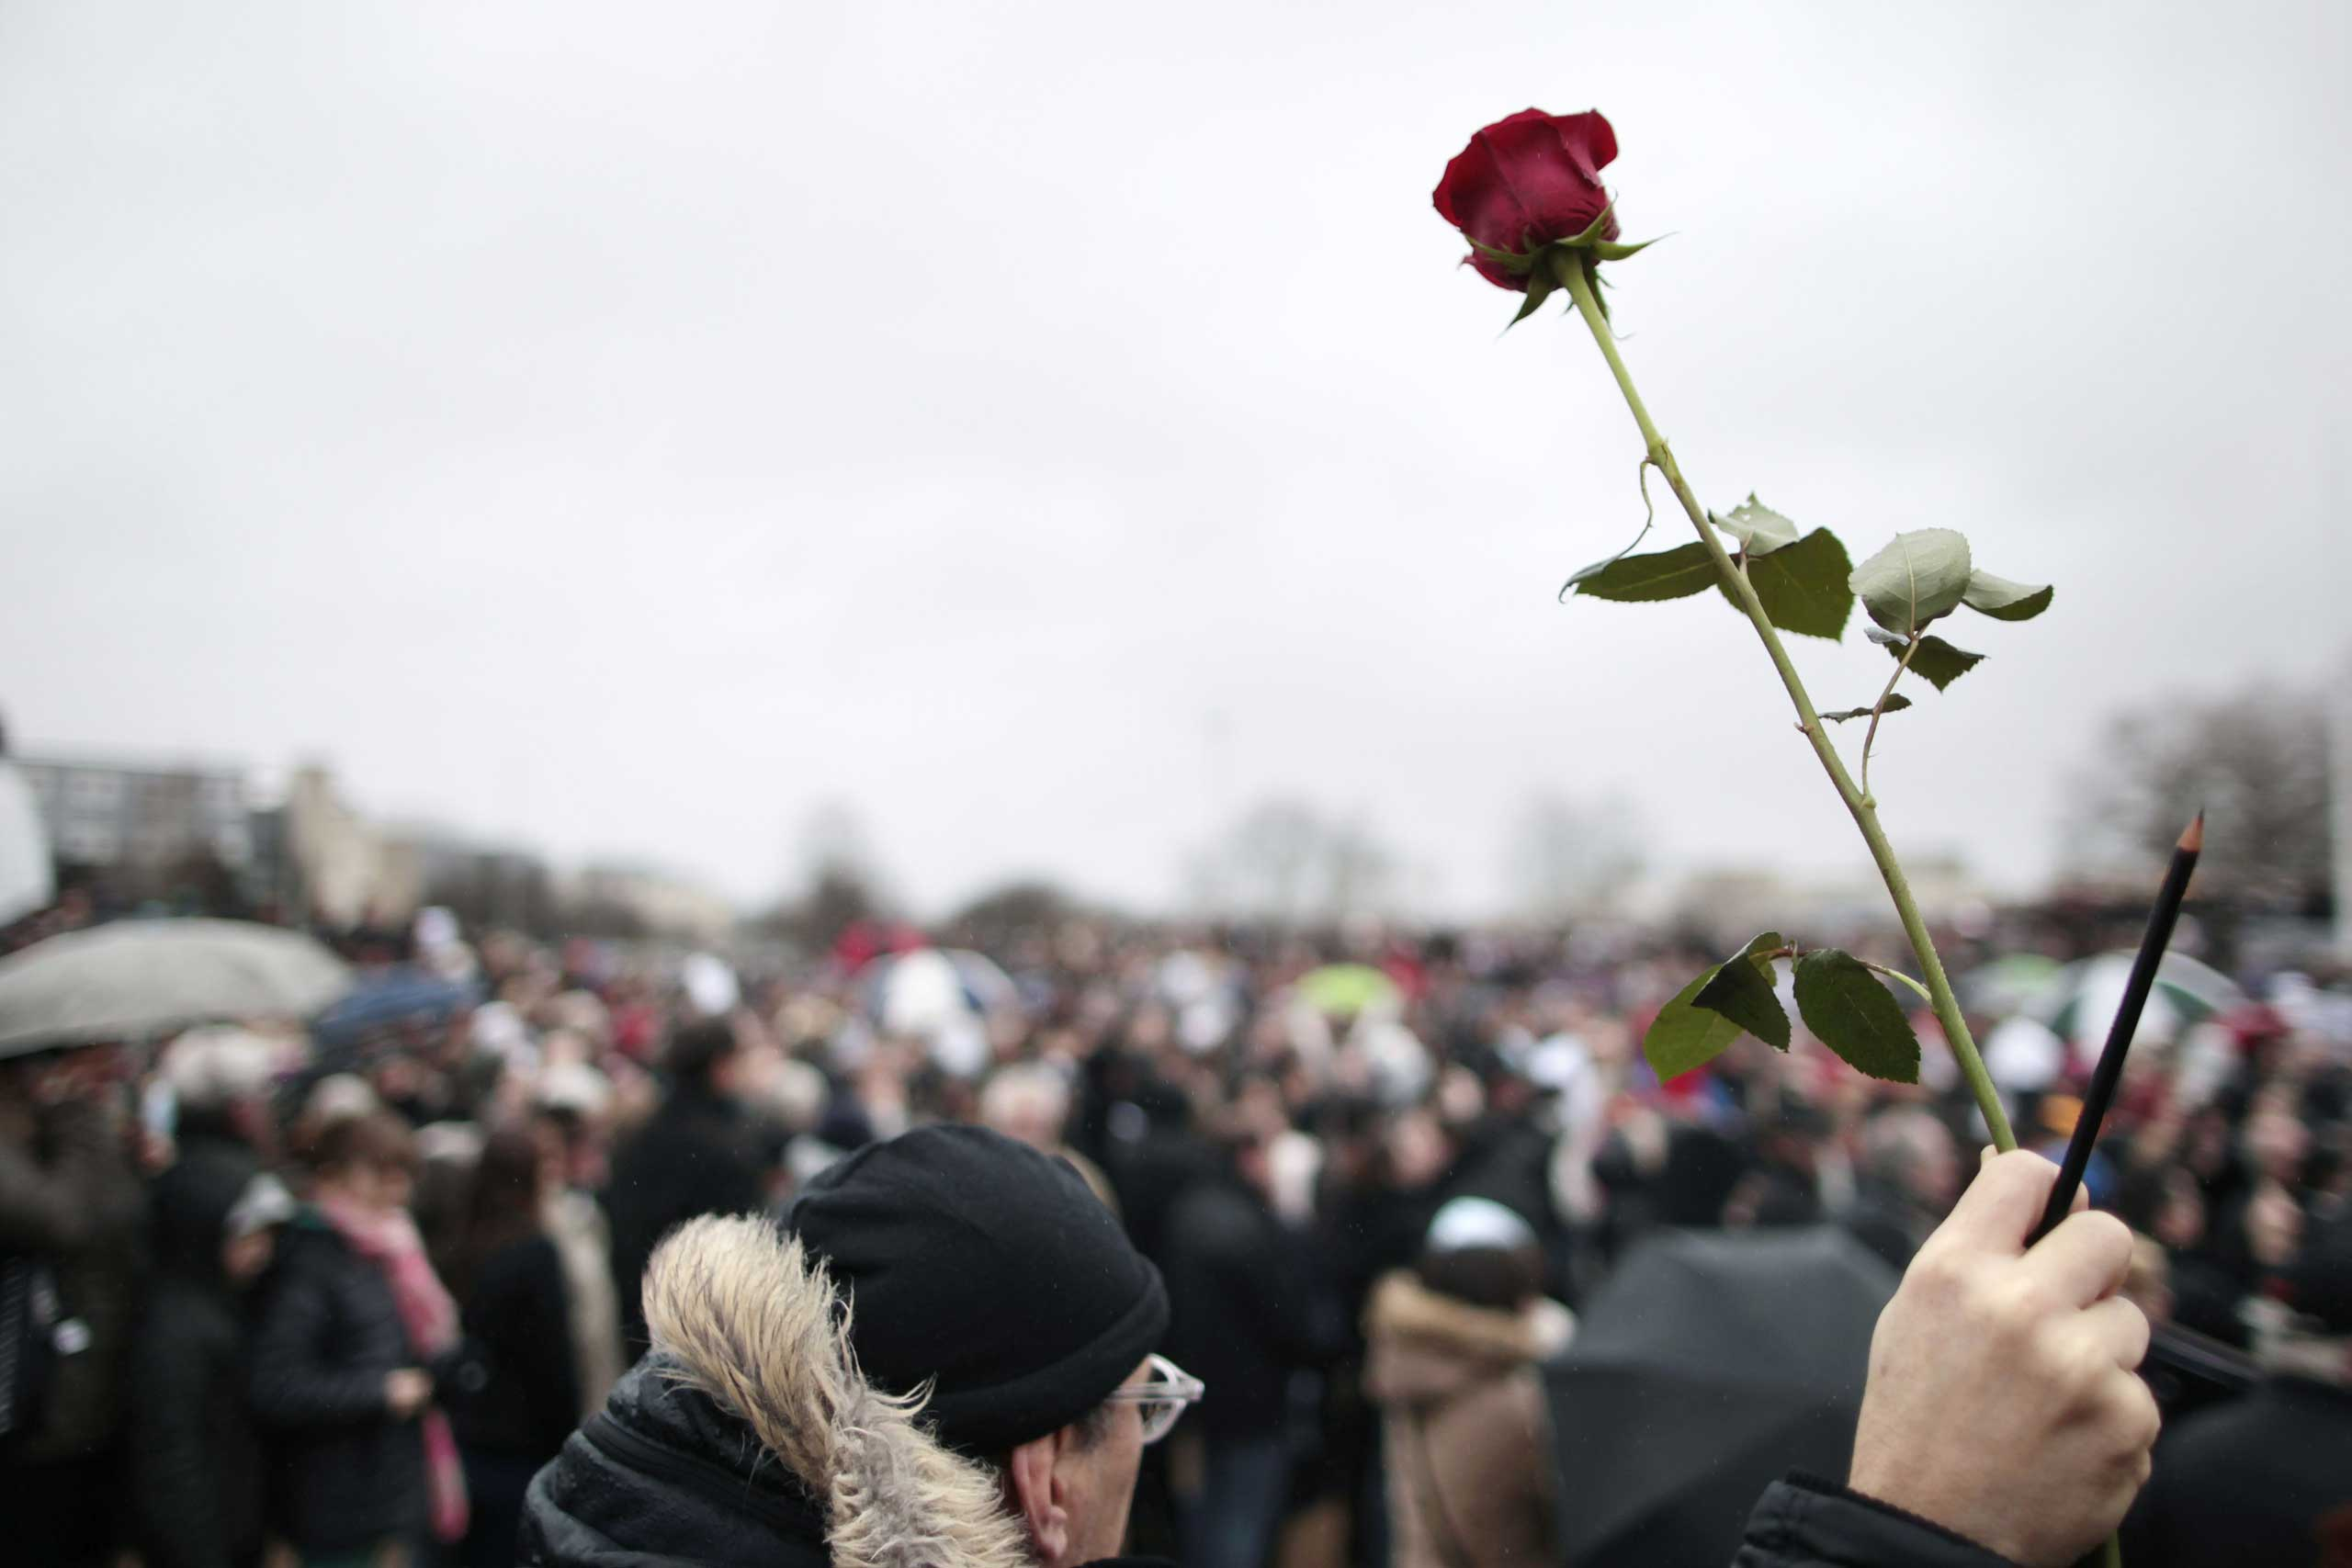 A man hold a rose and pencil during a rally at the Memorial Square in Caen on Jan. 10, 2015.